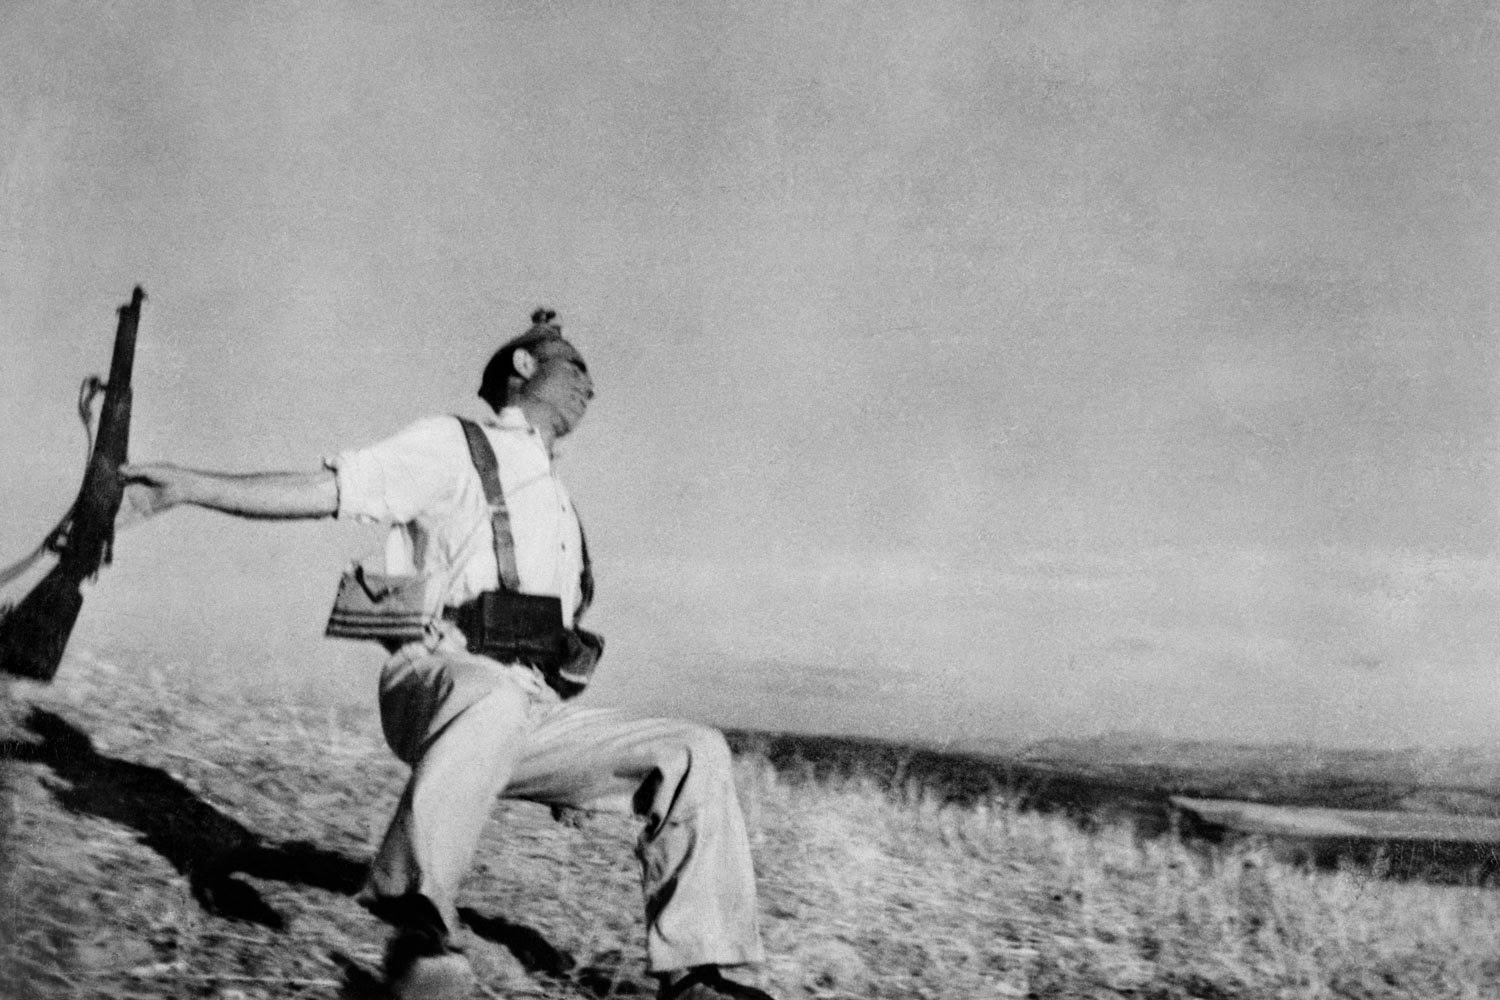 Robert Capa: The Falling Soldier, 1936.